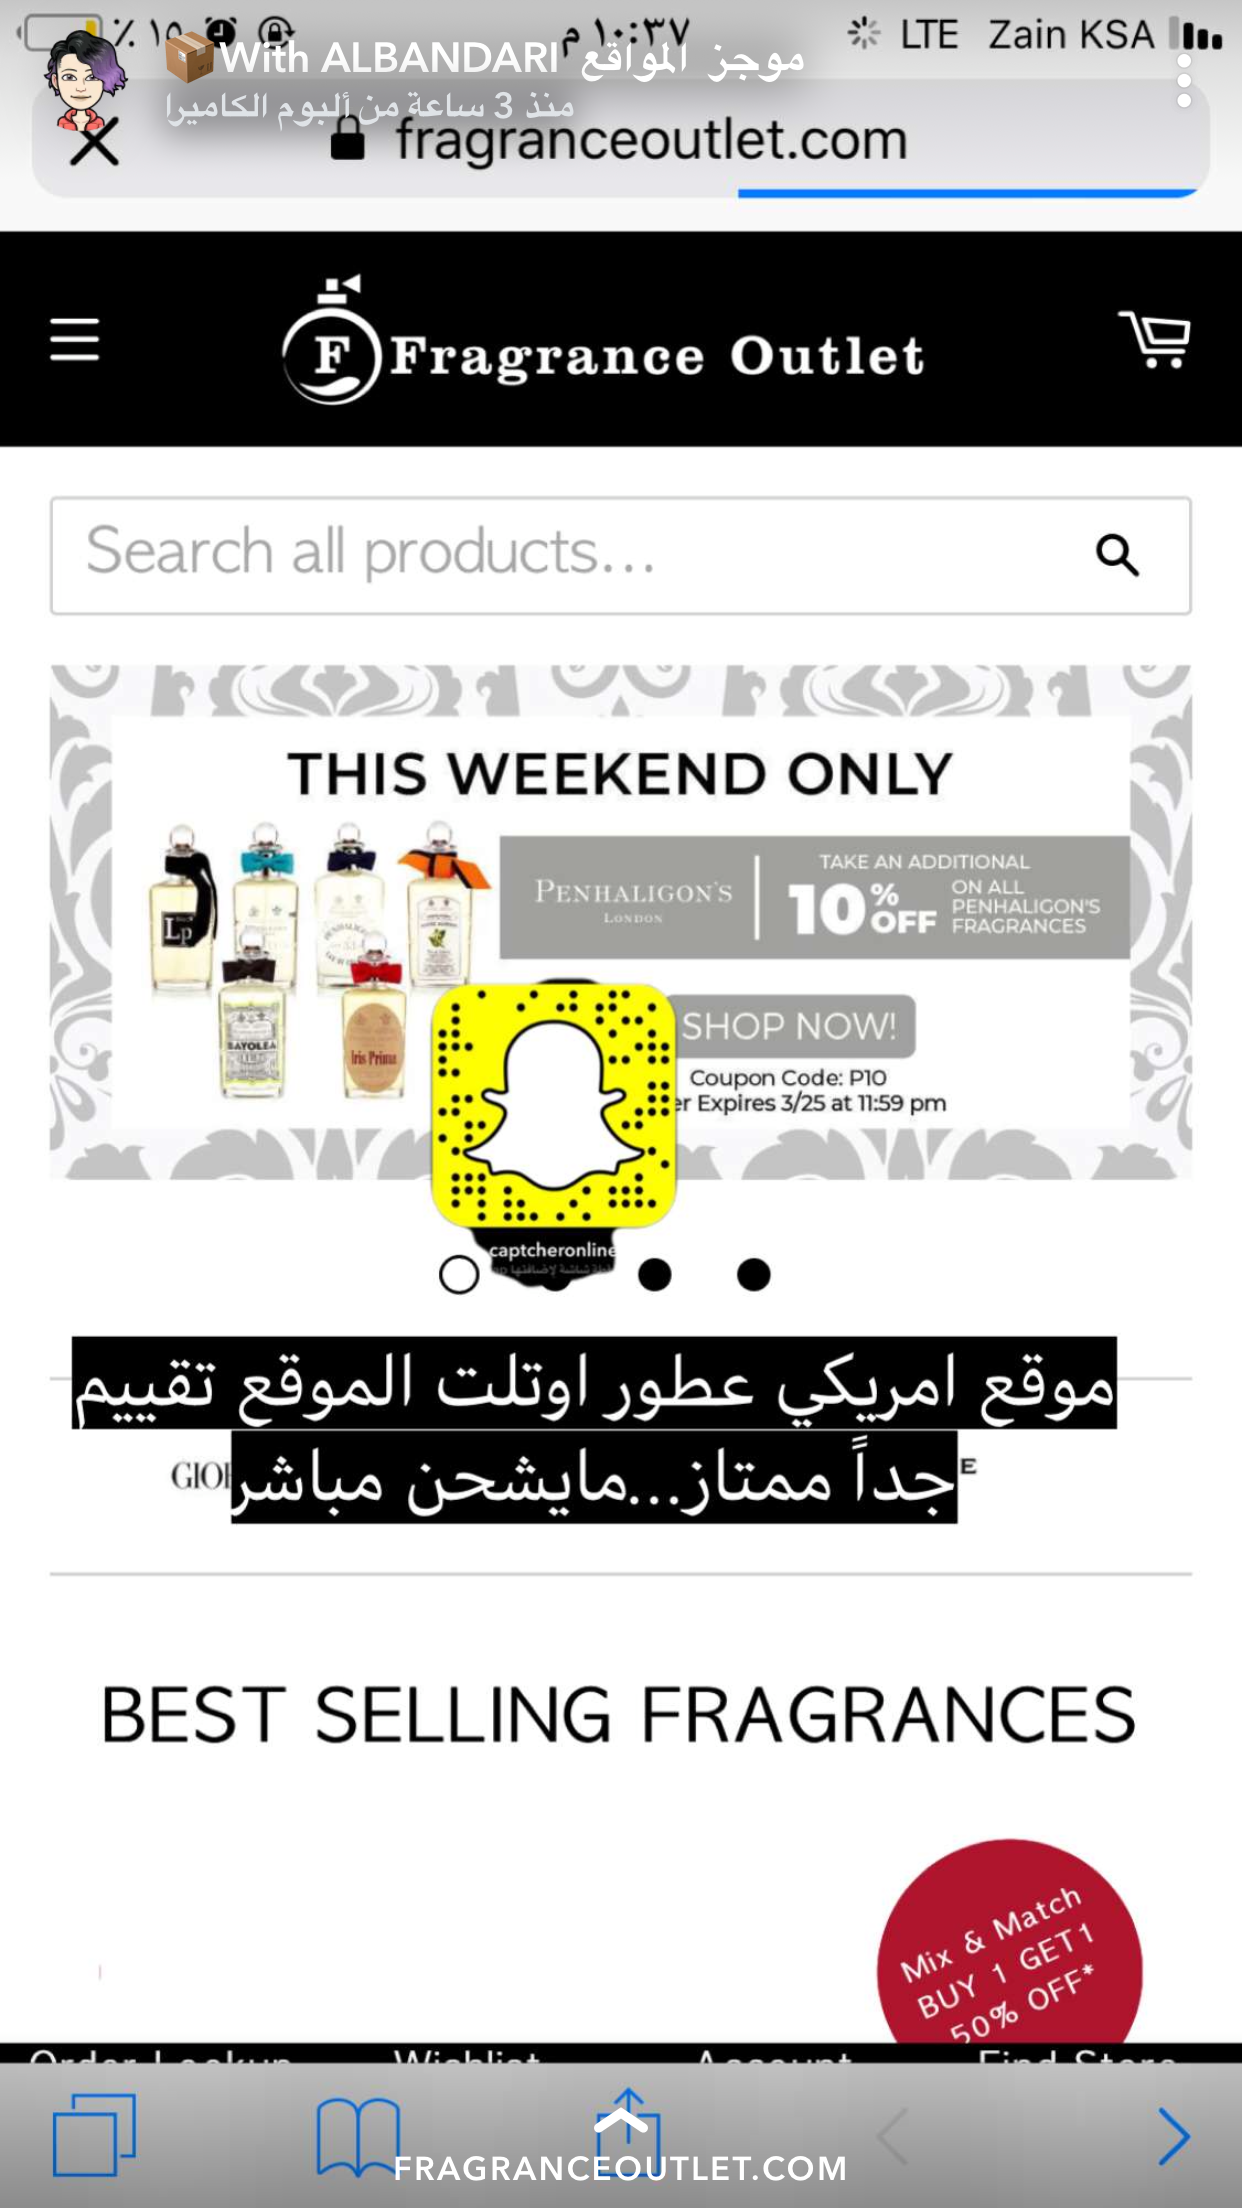 Pin by arwa on مواقع Fragrance outlet, Shopping